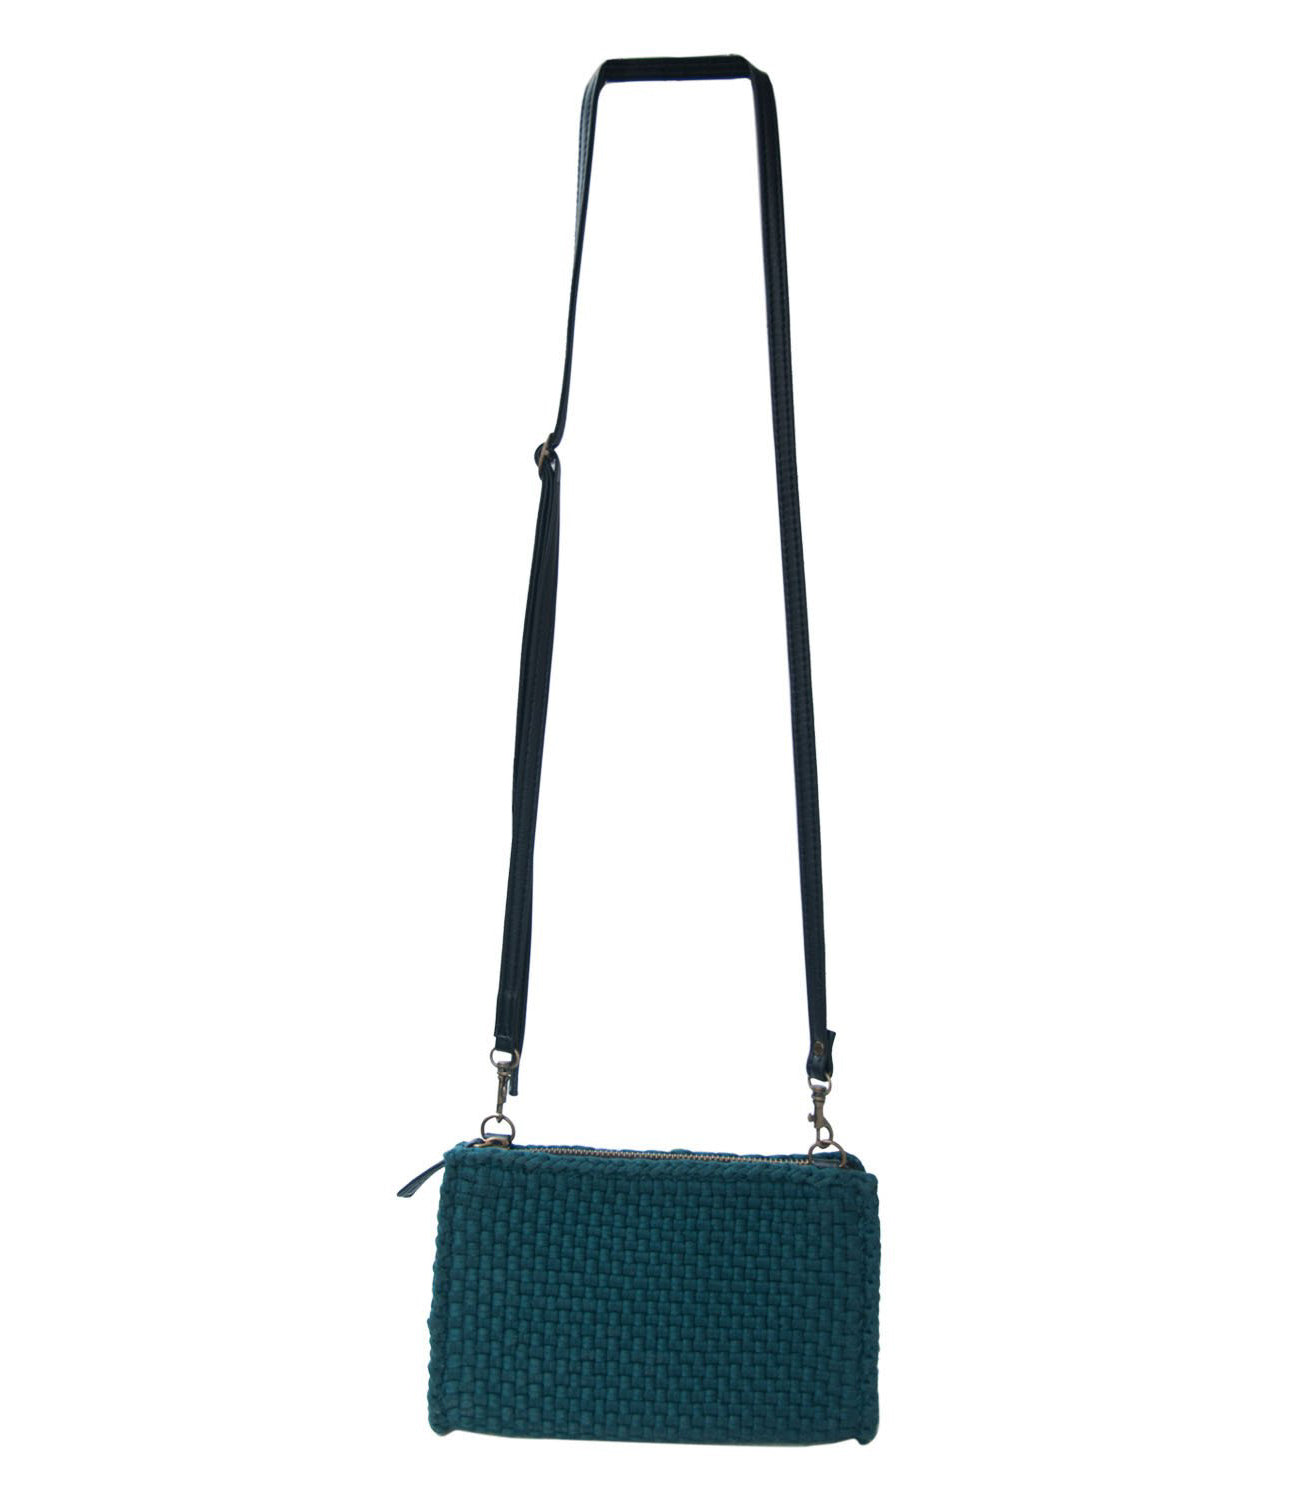 Clarence Travel Sling Bag in Emerald Green hanging on a wall with white background - Rags2Riches